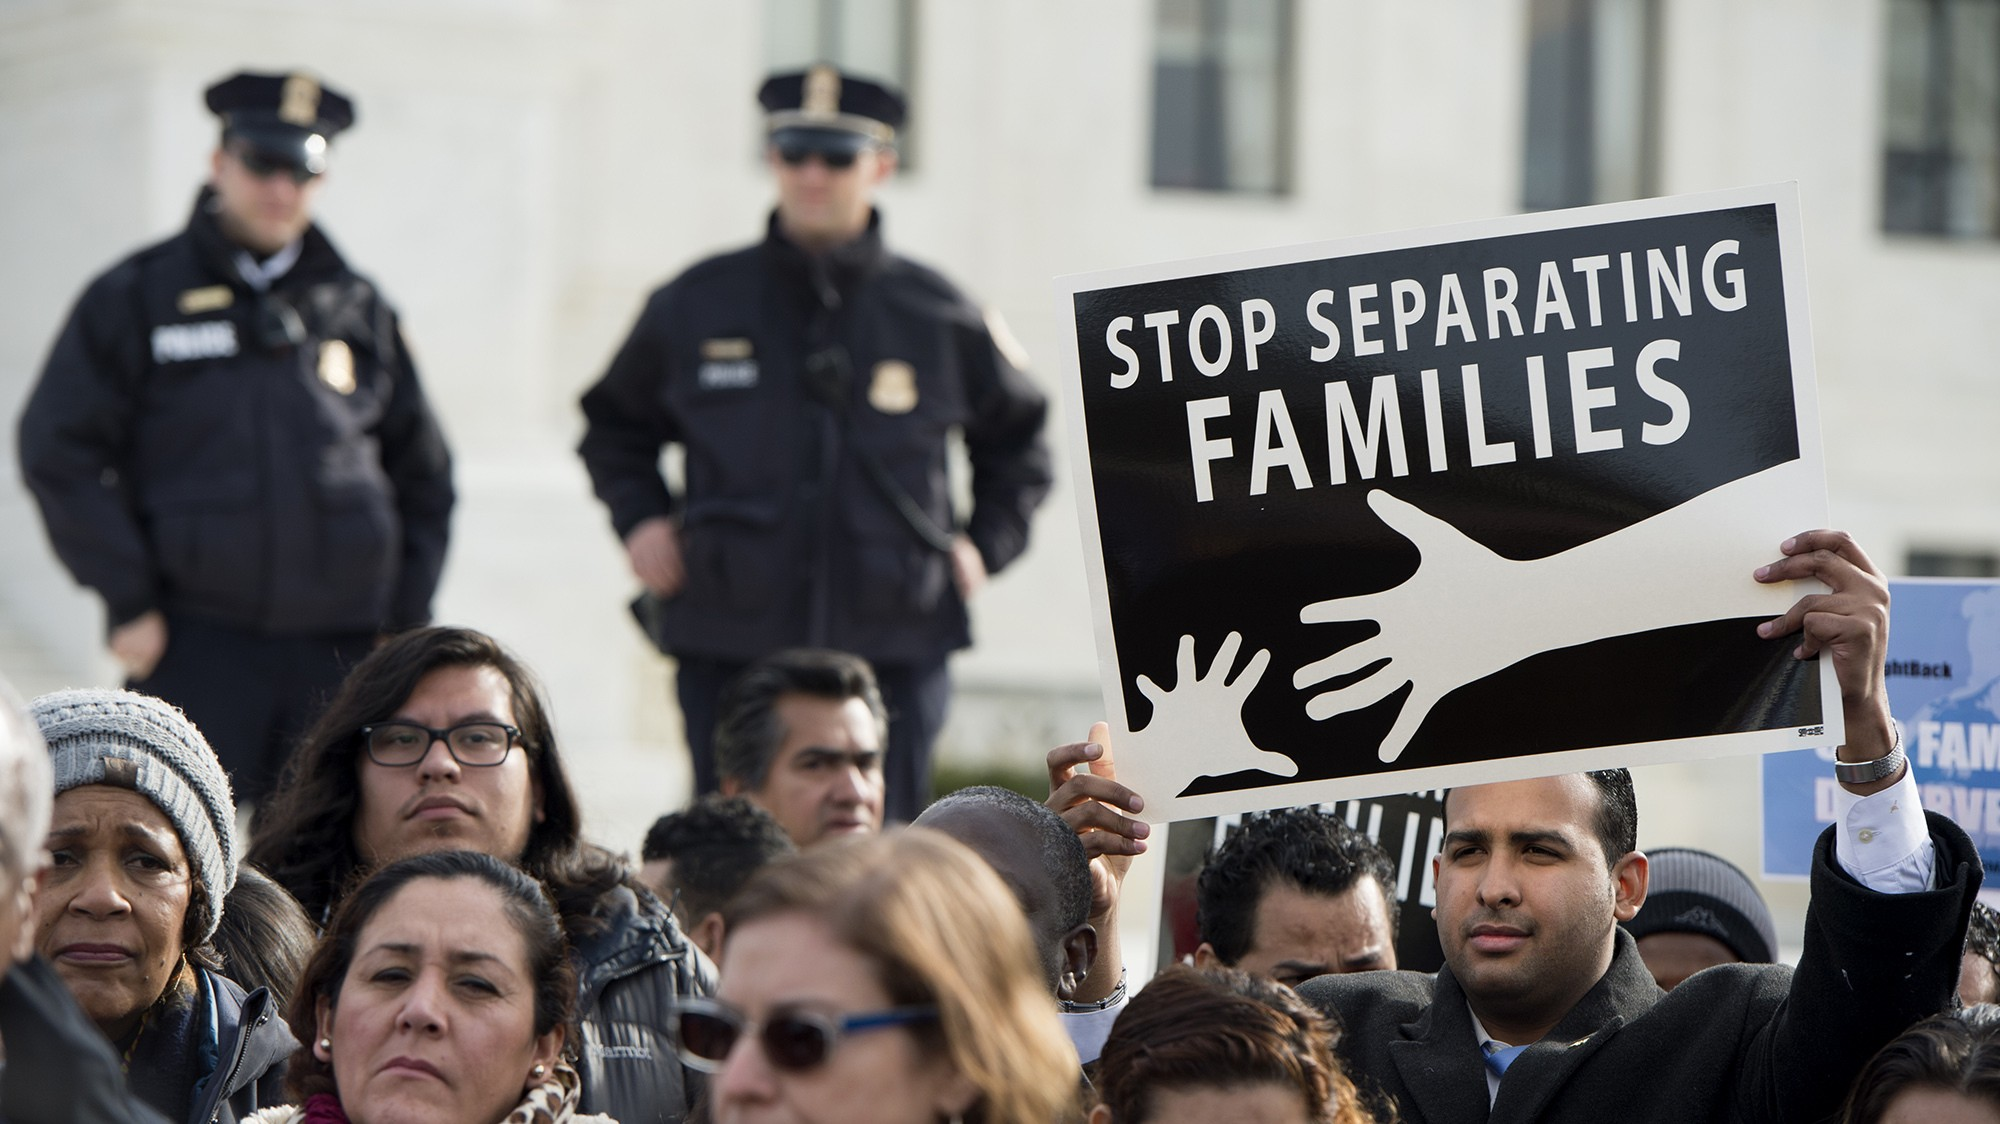 A Deported Central American Family Can Now Return to the US to Seek Asylum